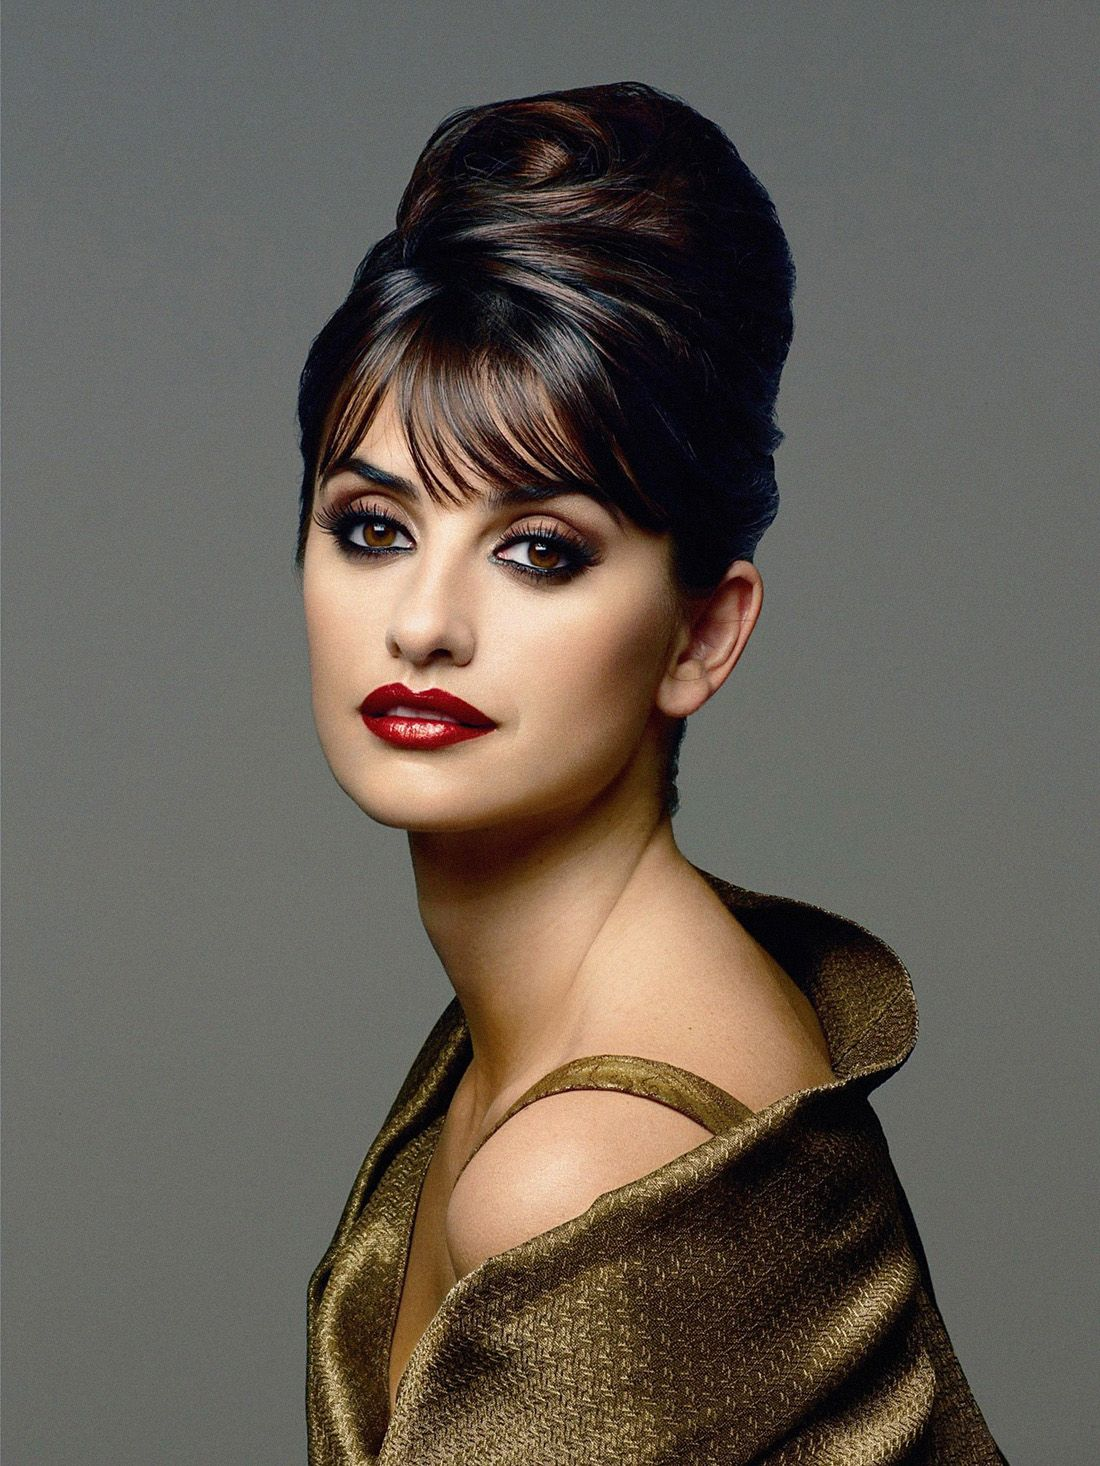 penelope cruz adam levine other faces i like pinterest coiffure penelope cruz et. Black Bedroom Furniture Sets. Home Design Ideas